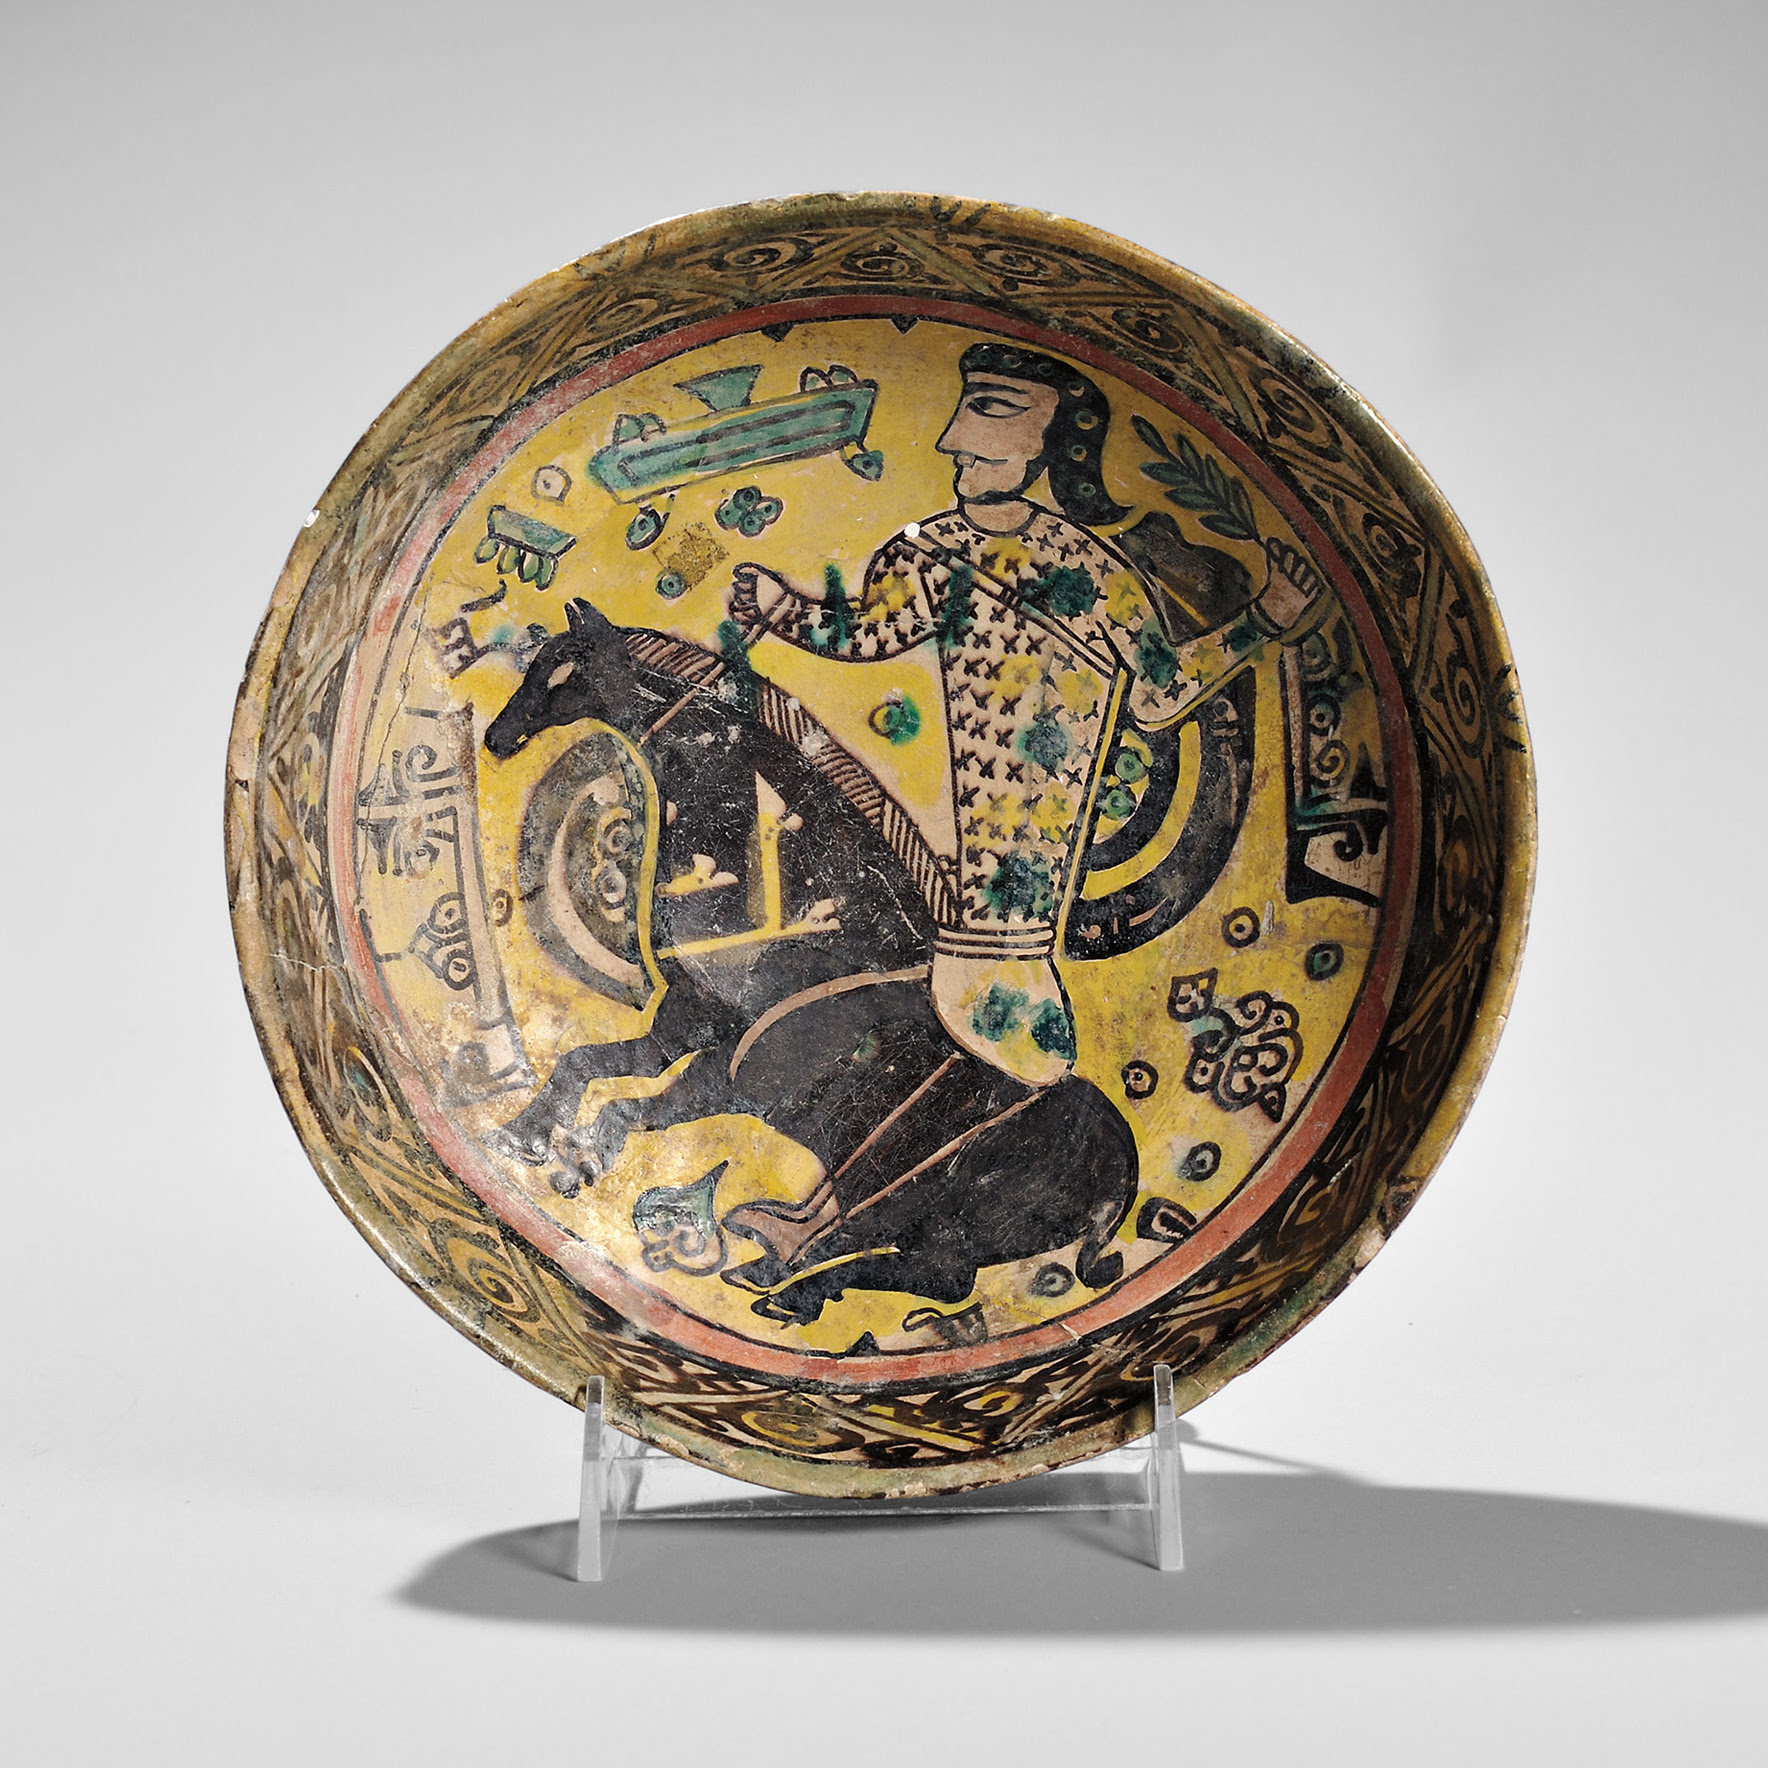 Brown-glazed Low Bowl, Persia, possibly 13th century (Lot 39, Estimate $2,000-3,000)